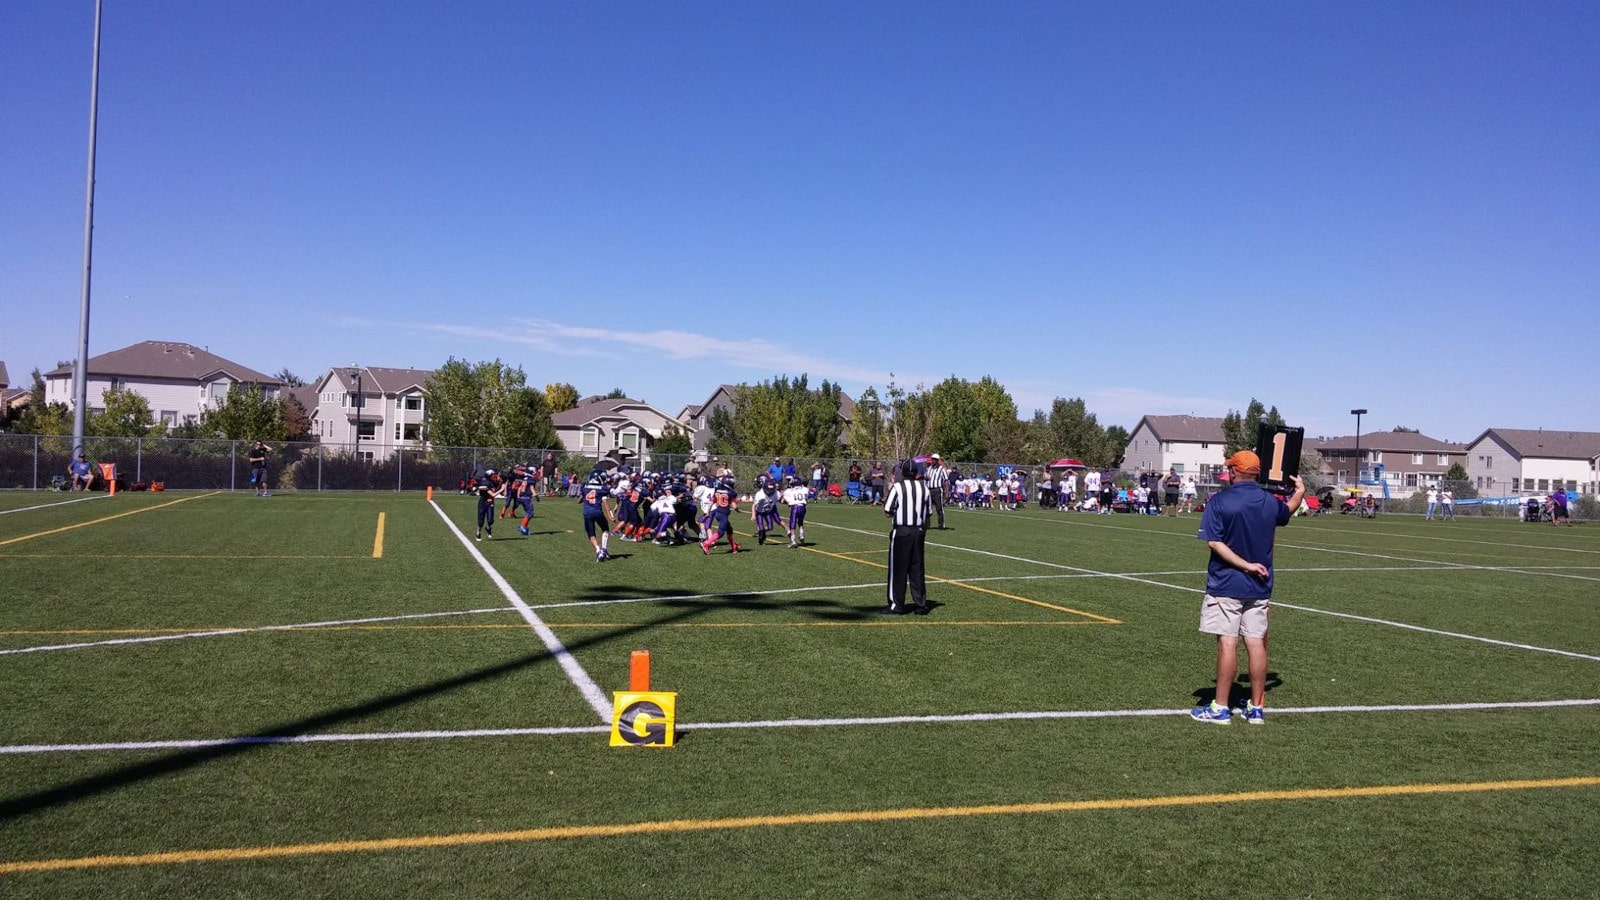 Image of a football game at the Challenger Regional Park in Parker, Colorado